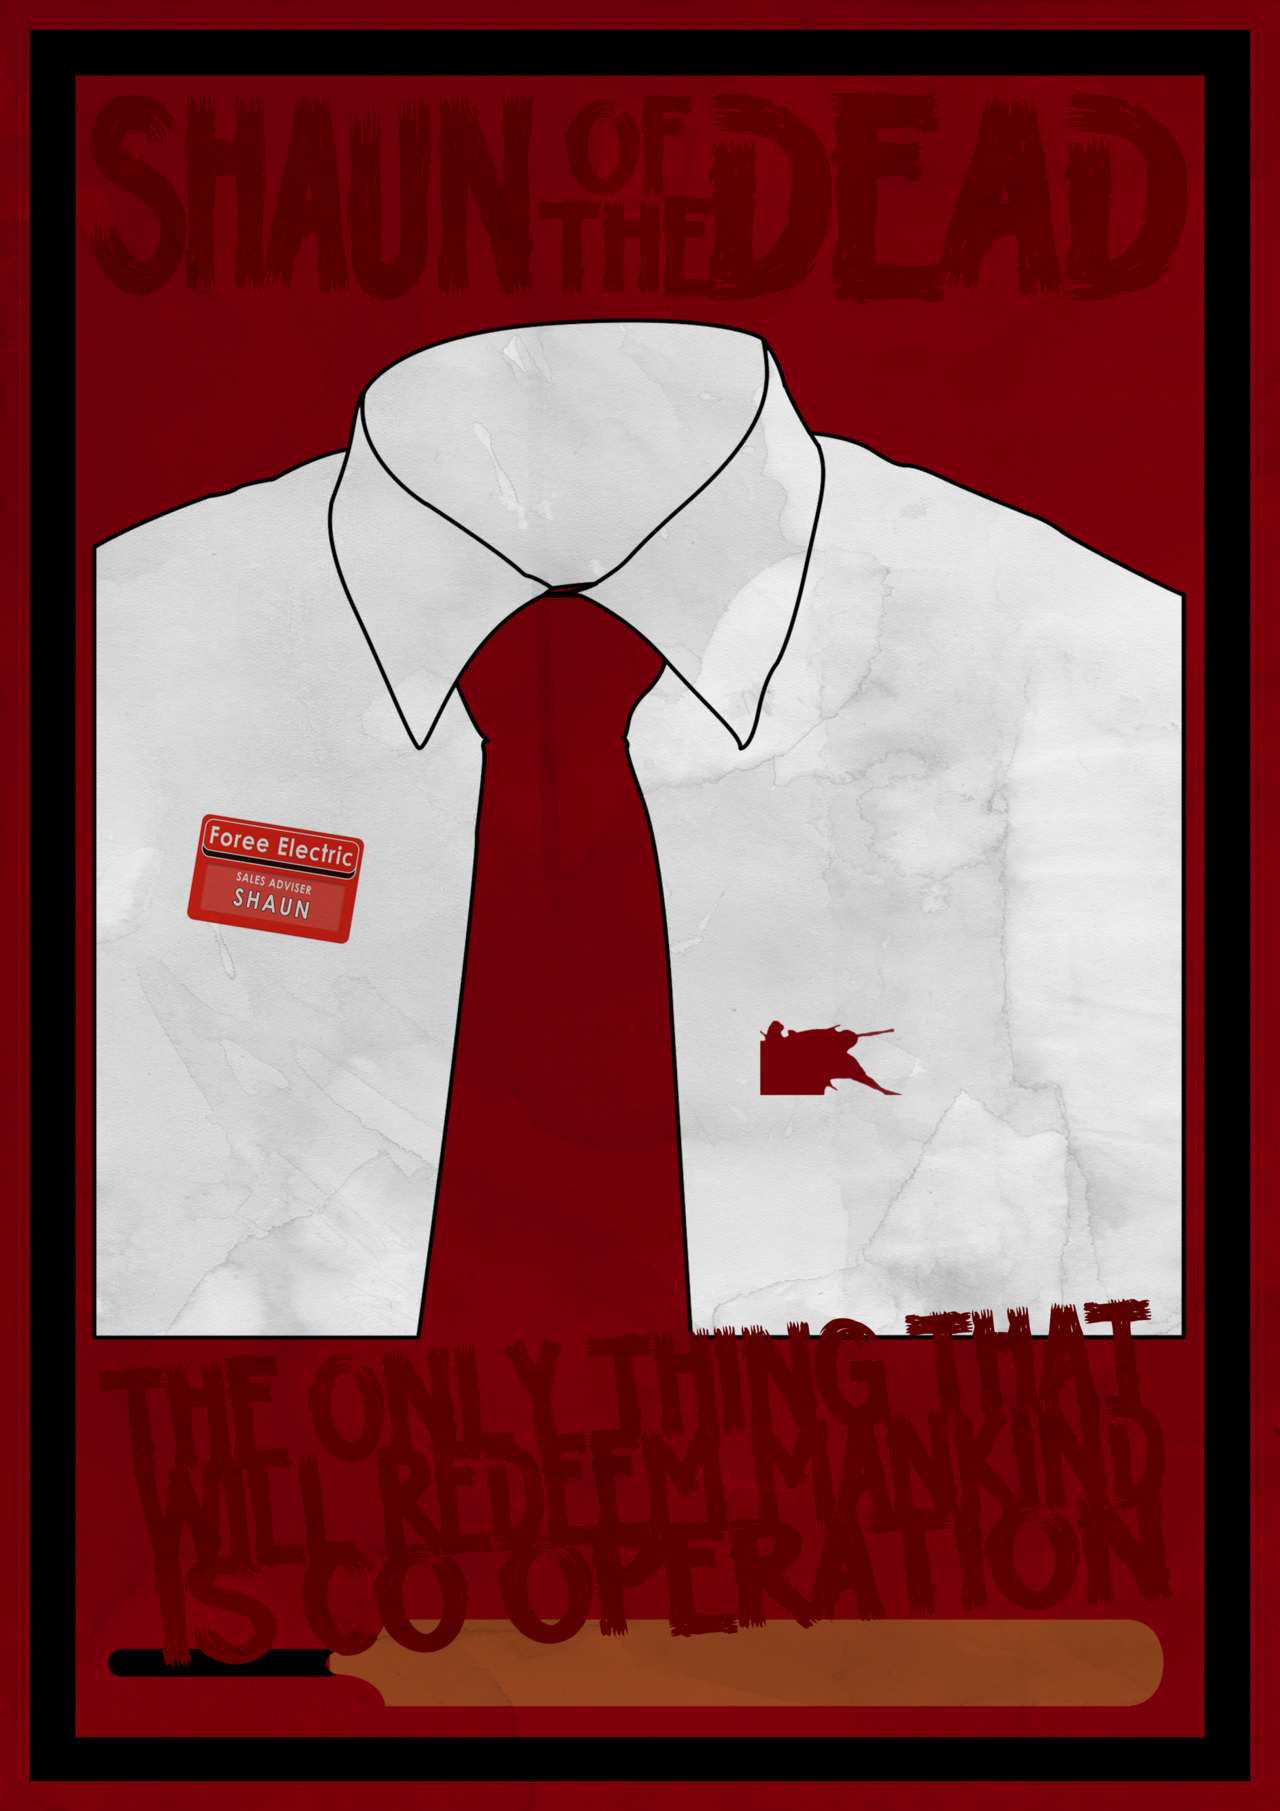 Poster one of my Shaun Of The Dead posters. I might try and sell them on Etsy when I'm done. Oh and D.A.D. if you're reading this, thanks for following!